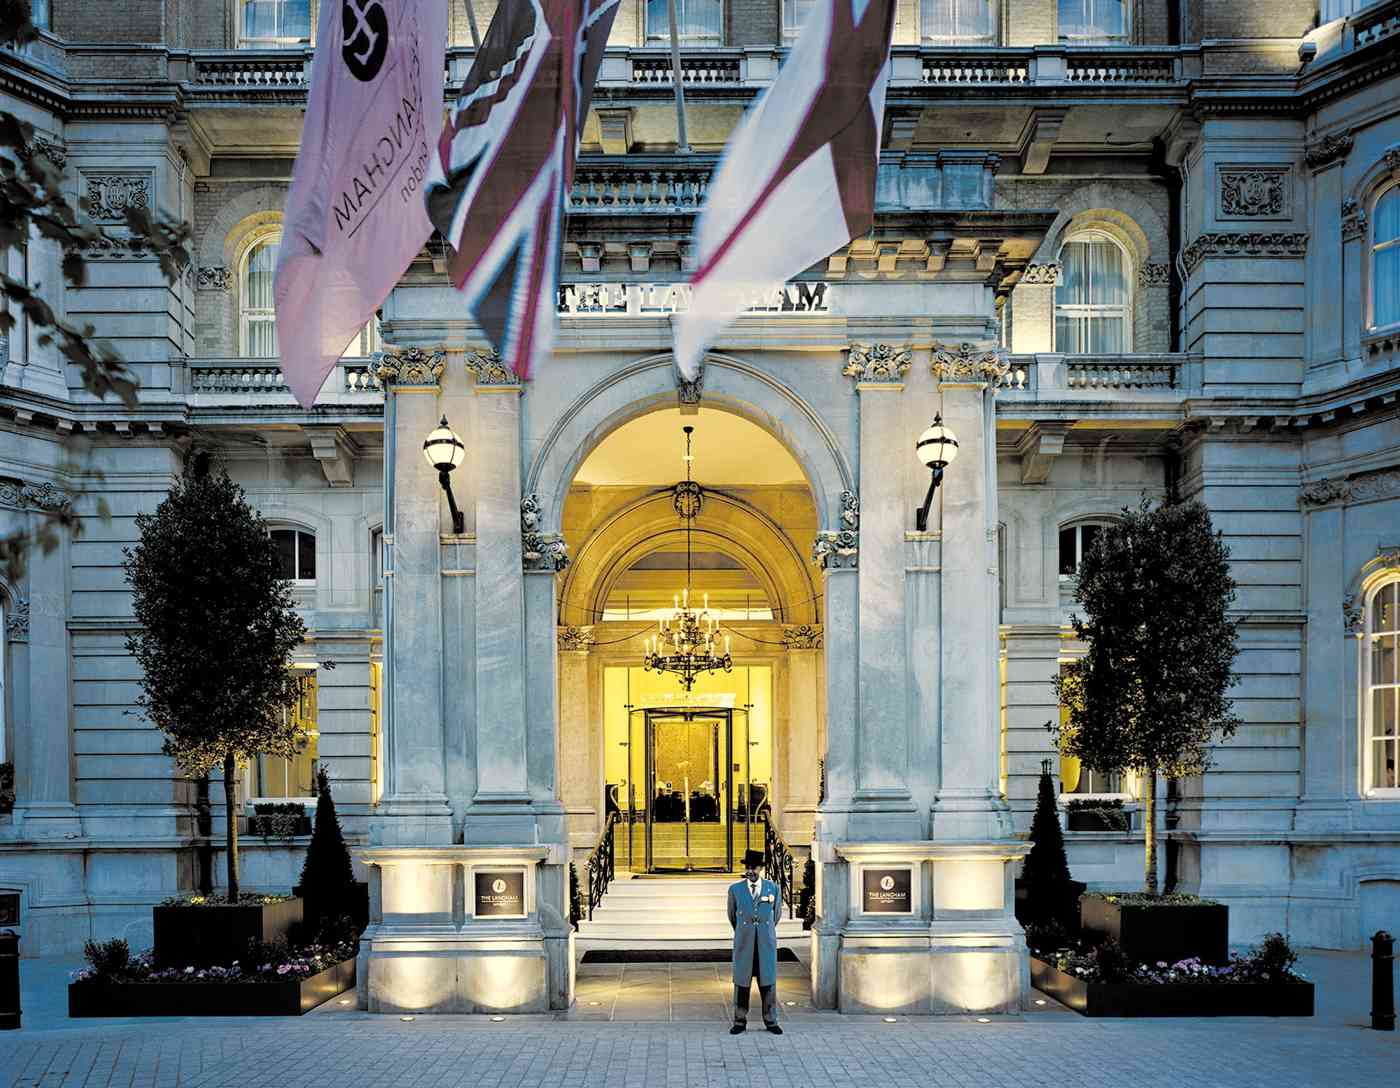 A grand entrance to a grand hotel: The Langham, London